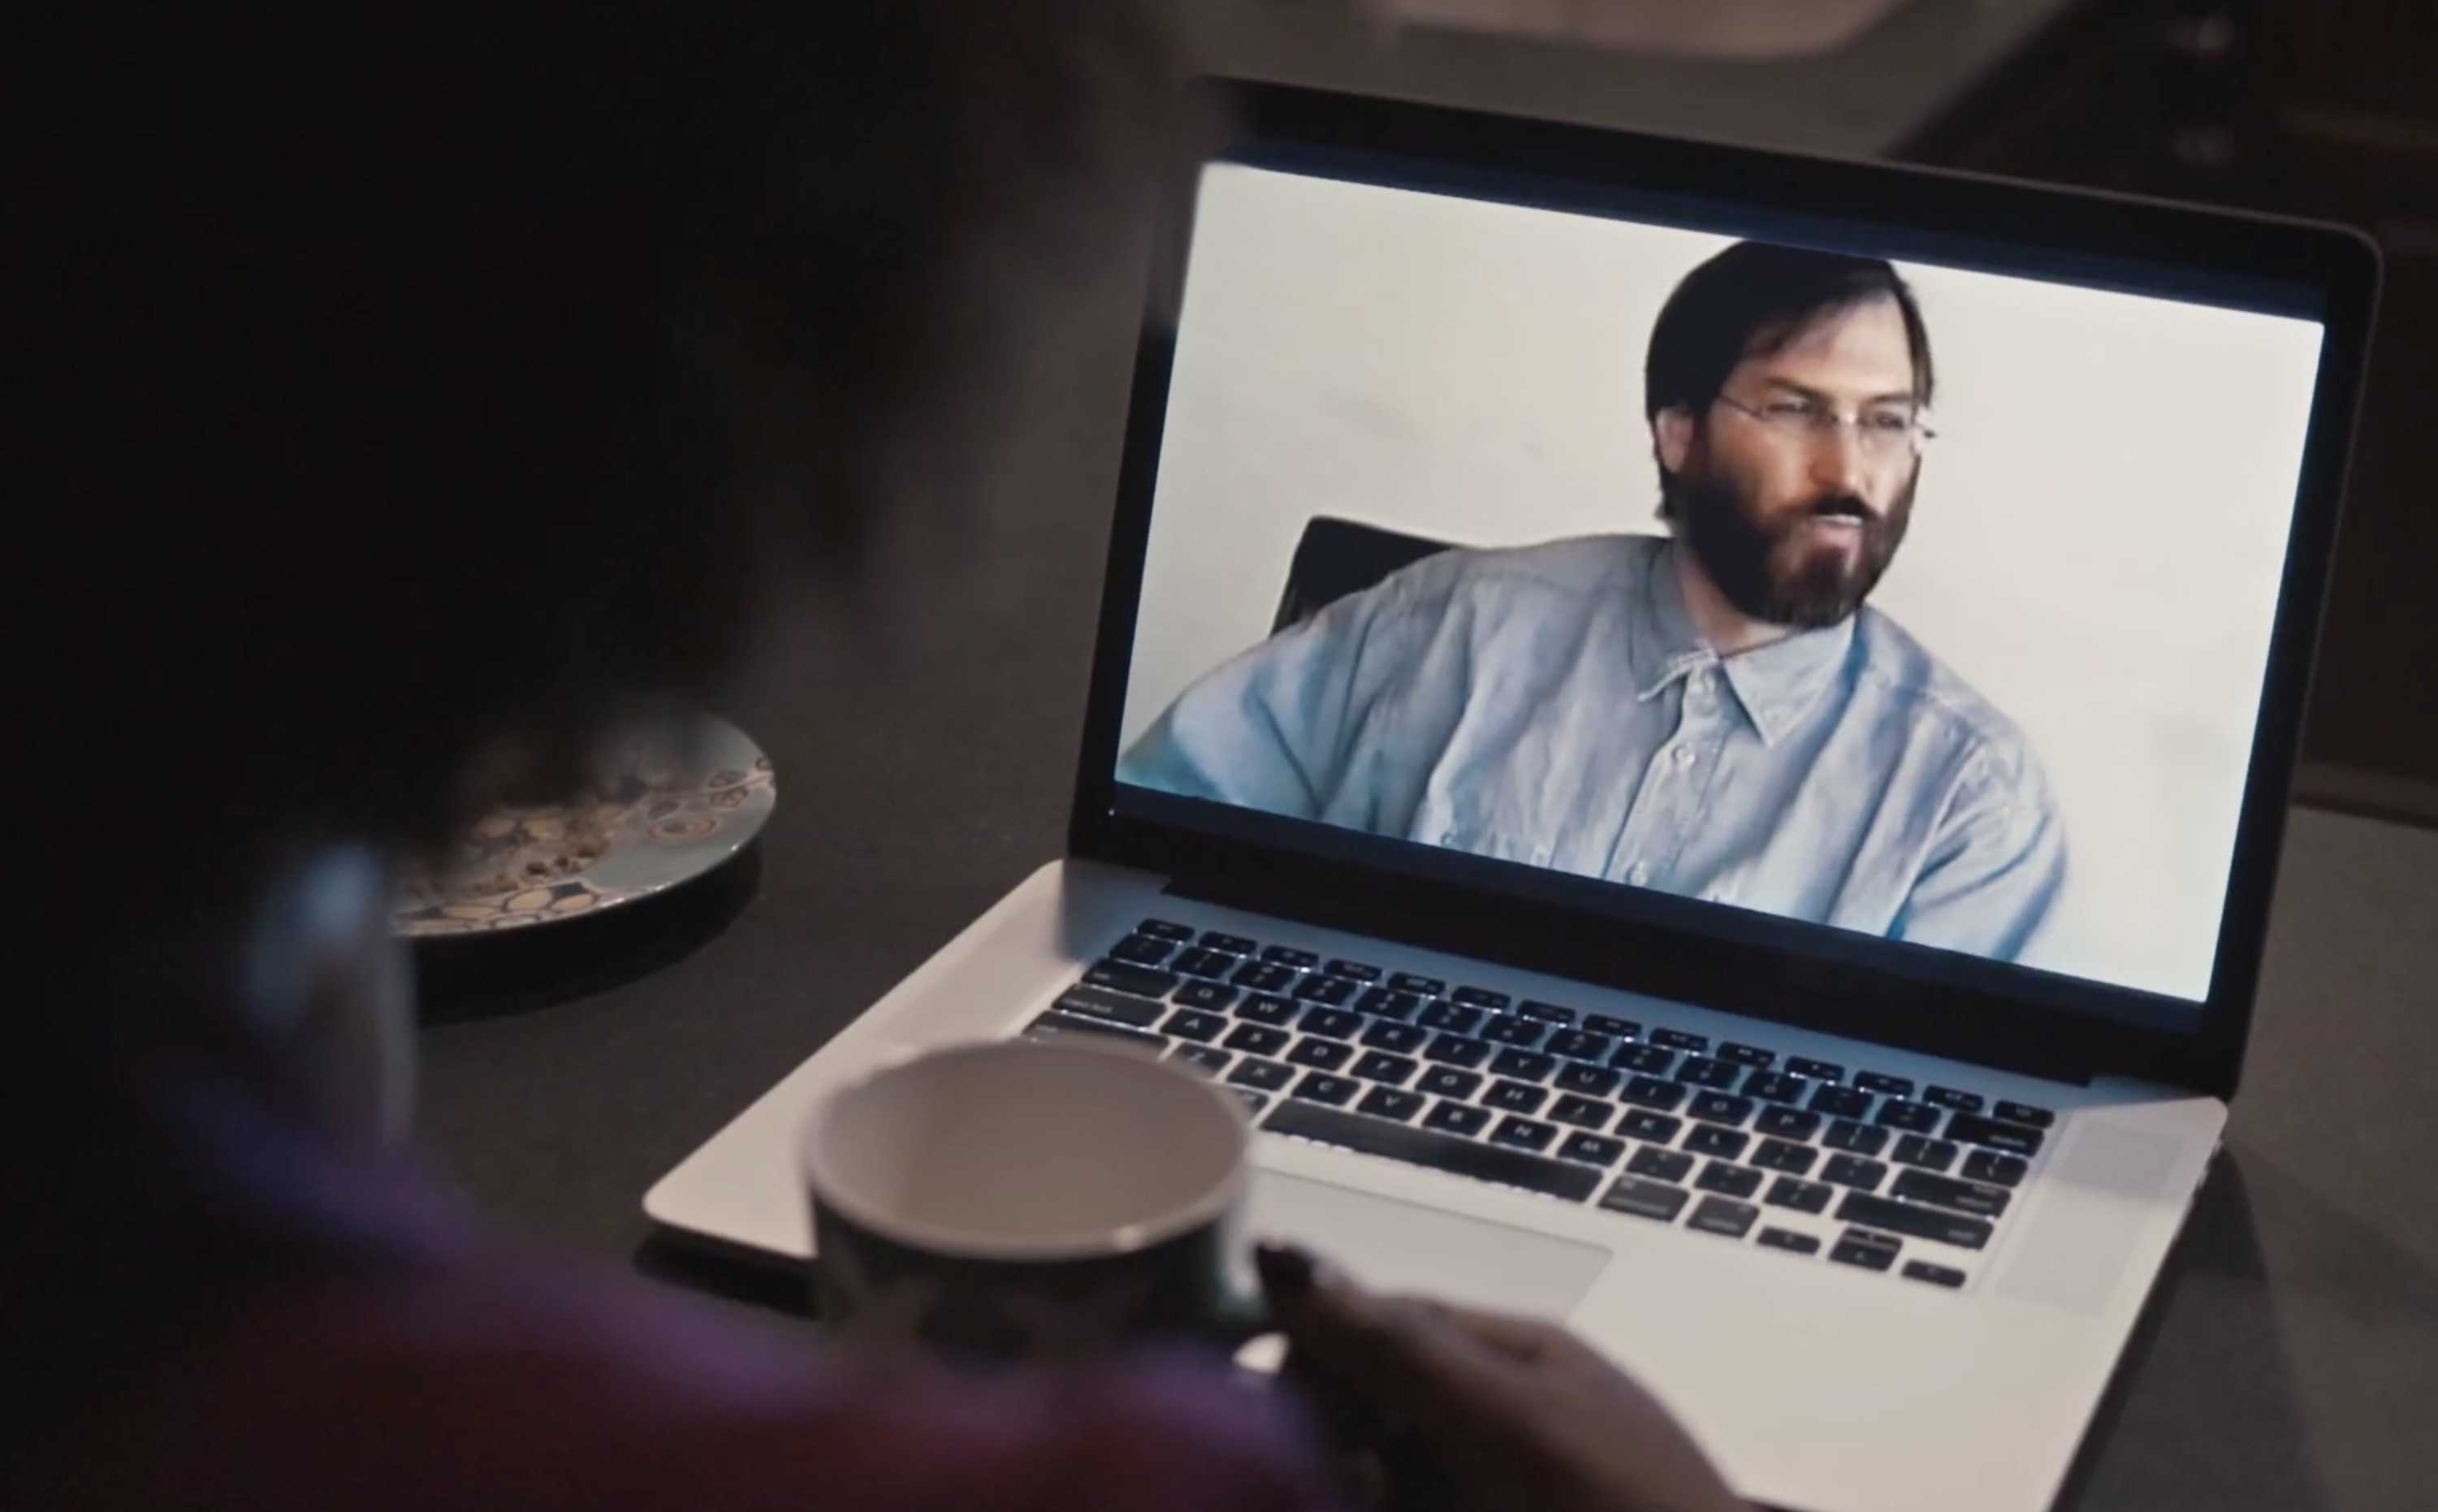 Steve Jobs is the star of the government's new ad campaign.